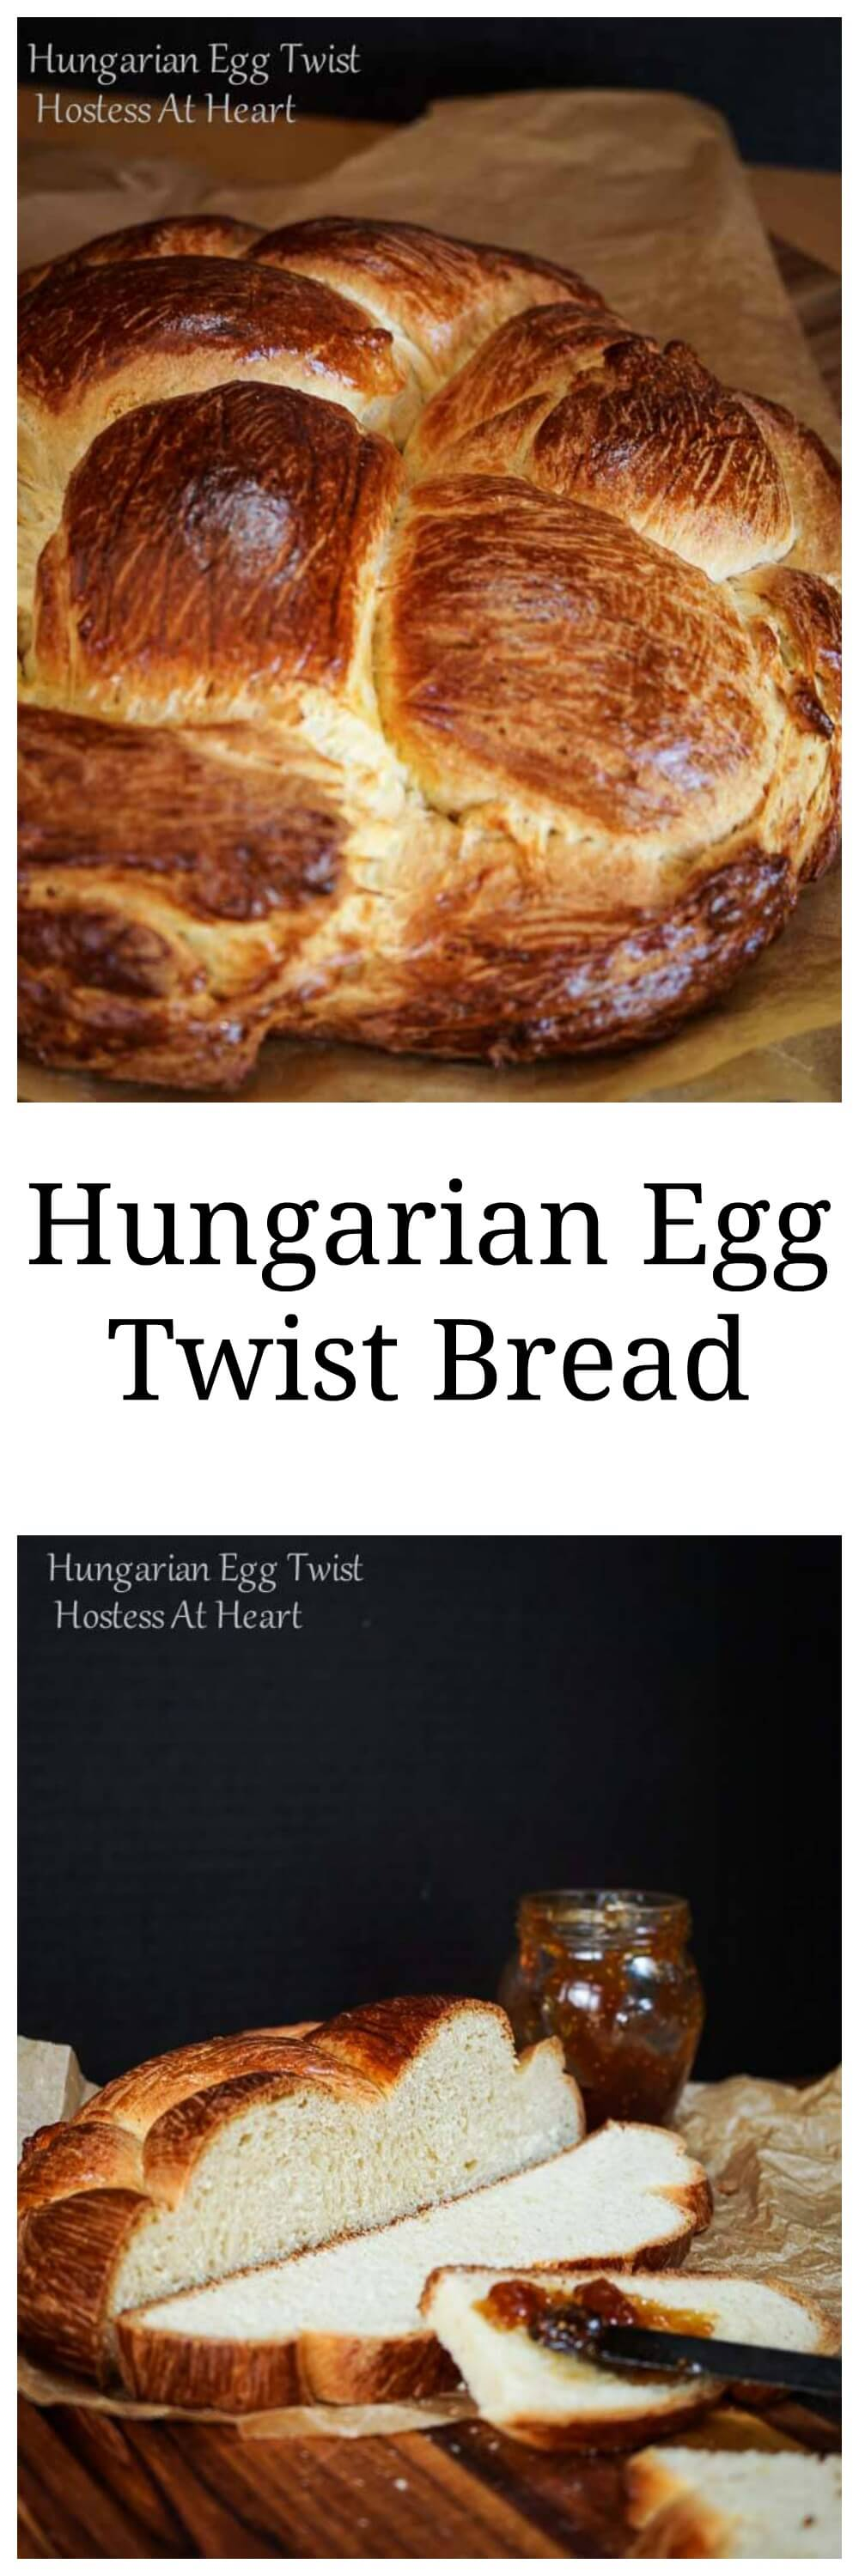 Hungarian Egg Twist bread is perfect for every day or a special occasion. You can sprinkle nuts or other additions into this sweetened bread or eat it as is.